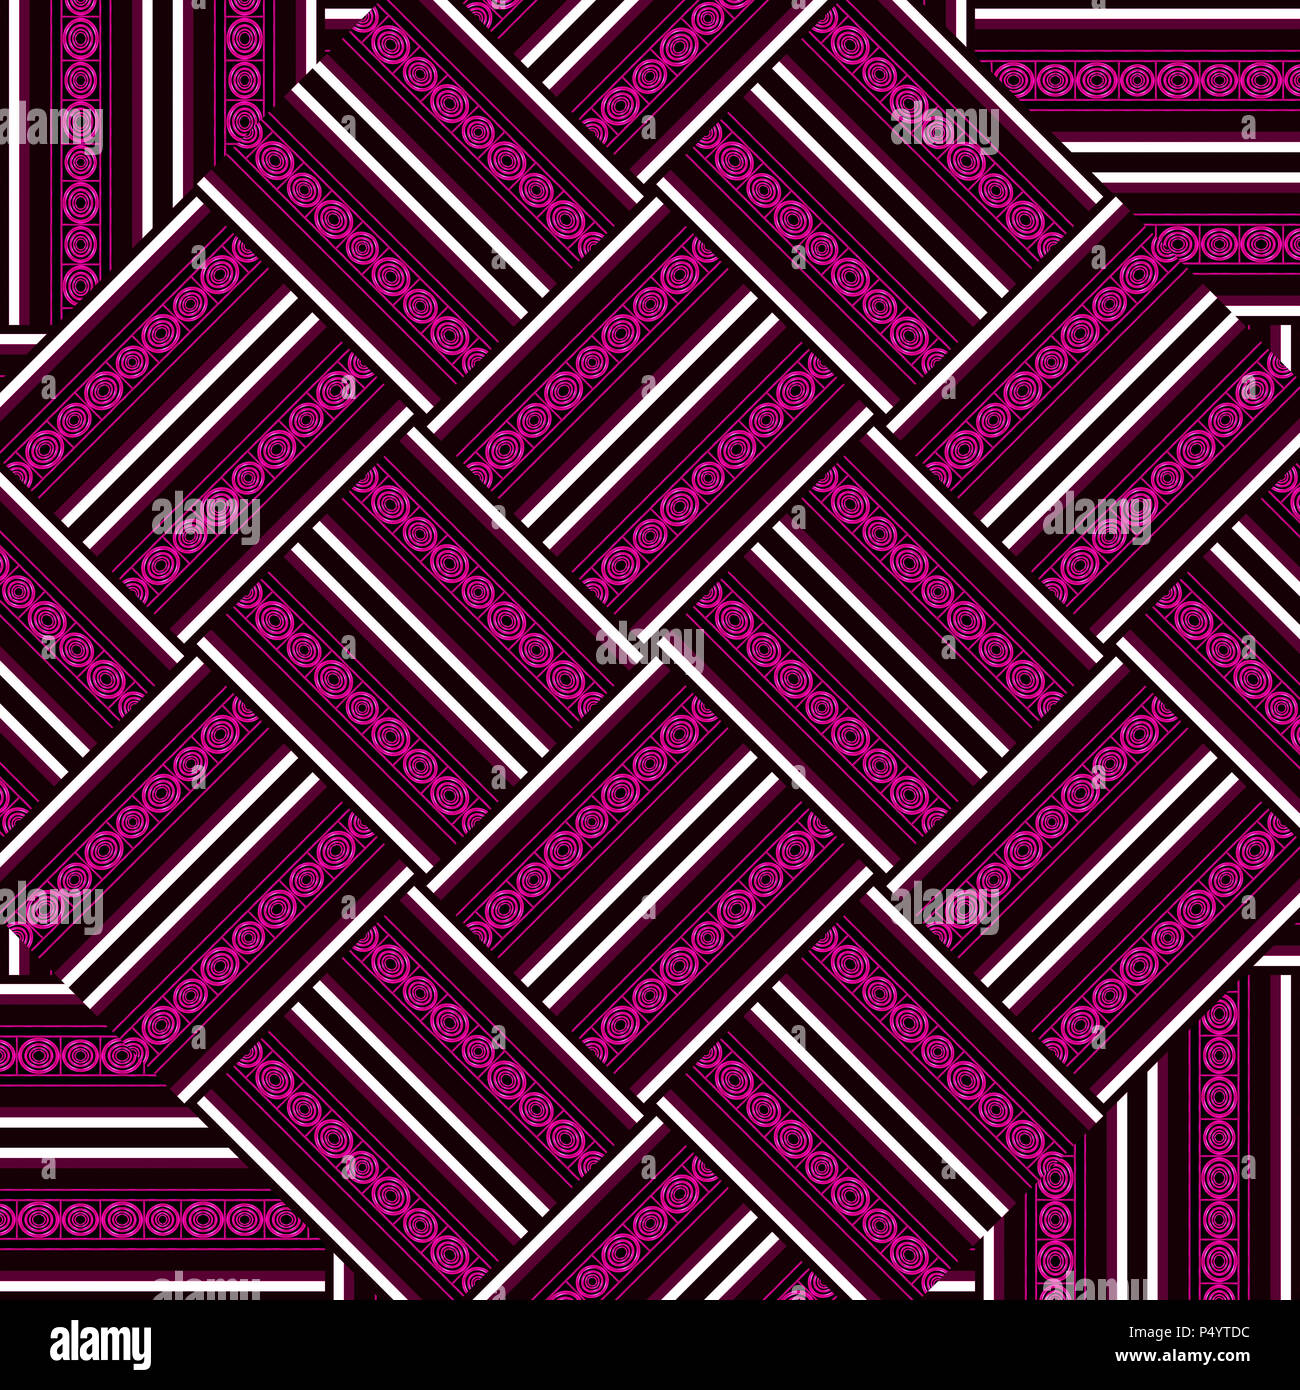 Digital art technique ethnic abstract geometric thread pattern